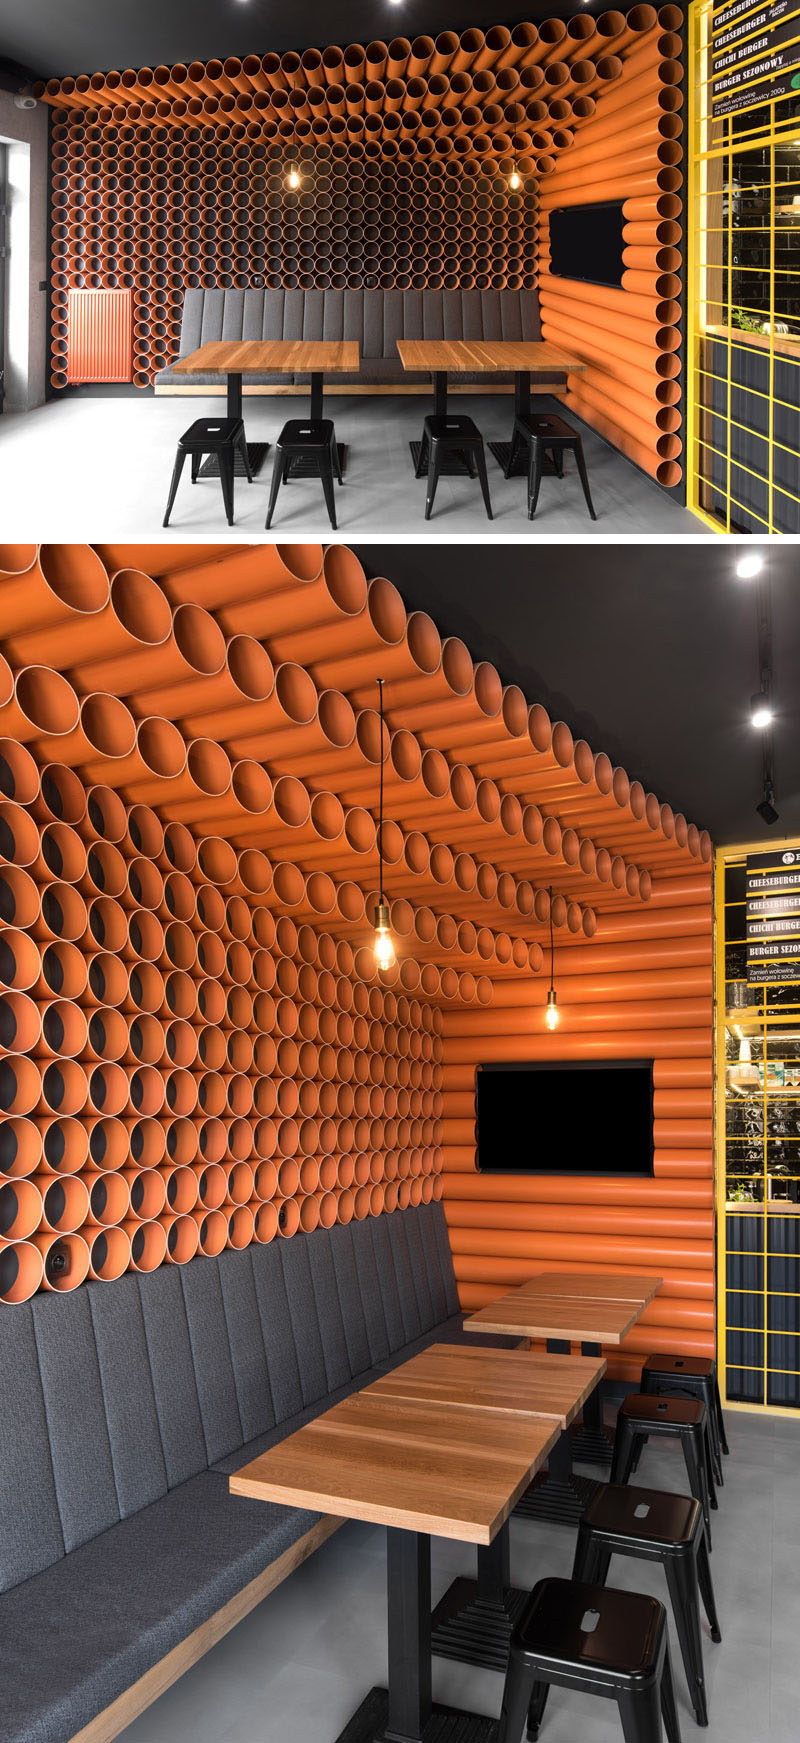 This modern restaurant features almost 300 bright orange PVC pipes that cover the walls and ceilings, while upholstered seating and tables run along the walls, create a comfortable place to sit and eat. #RestaurantDesign #ModernRestaurant #PVCpipes